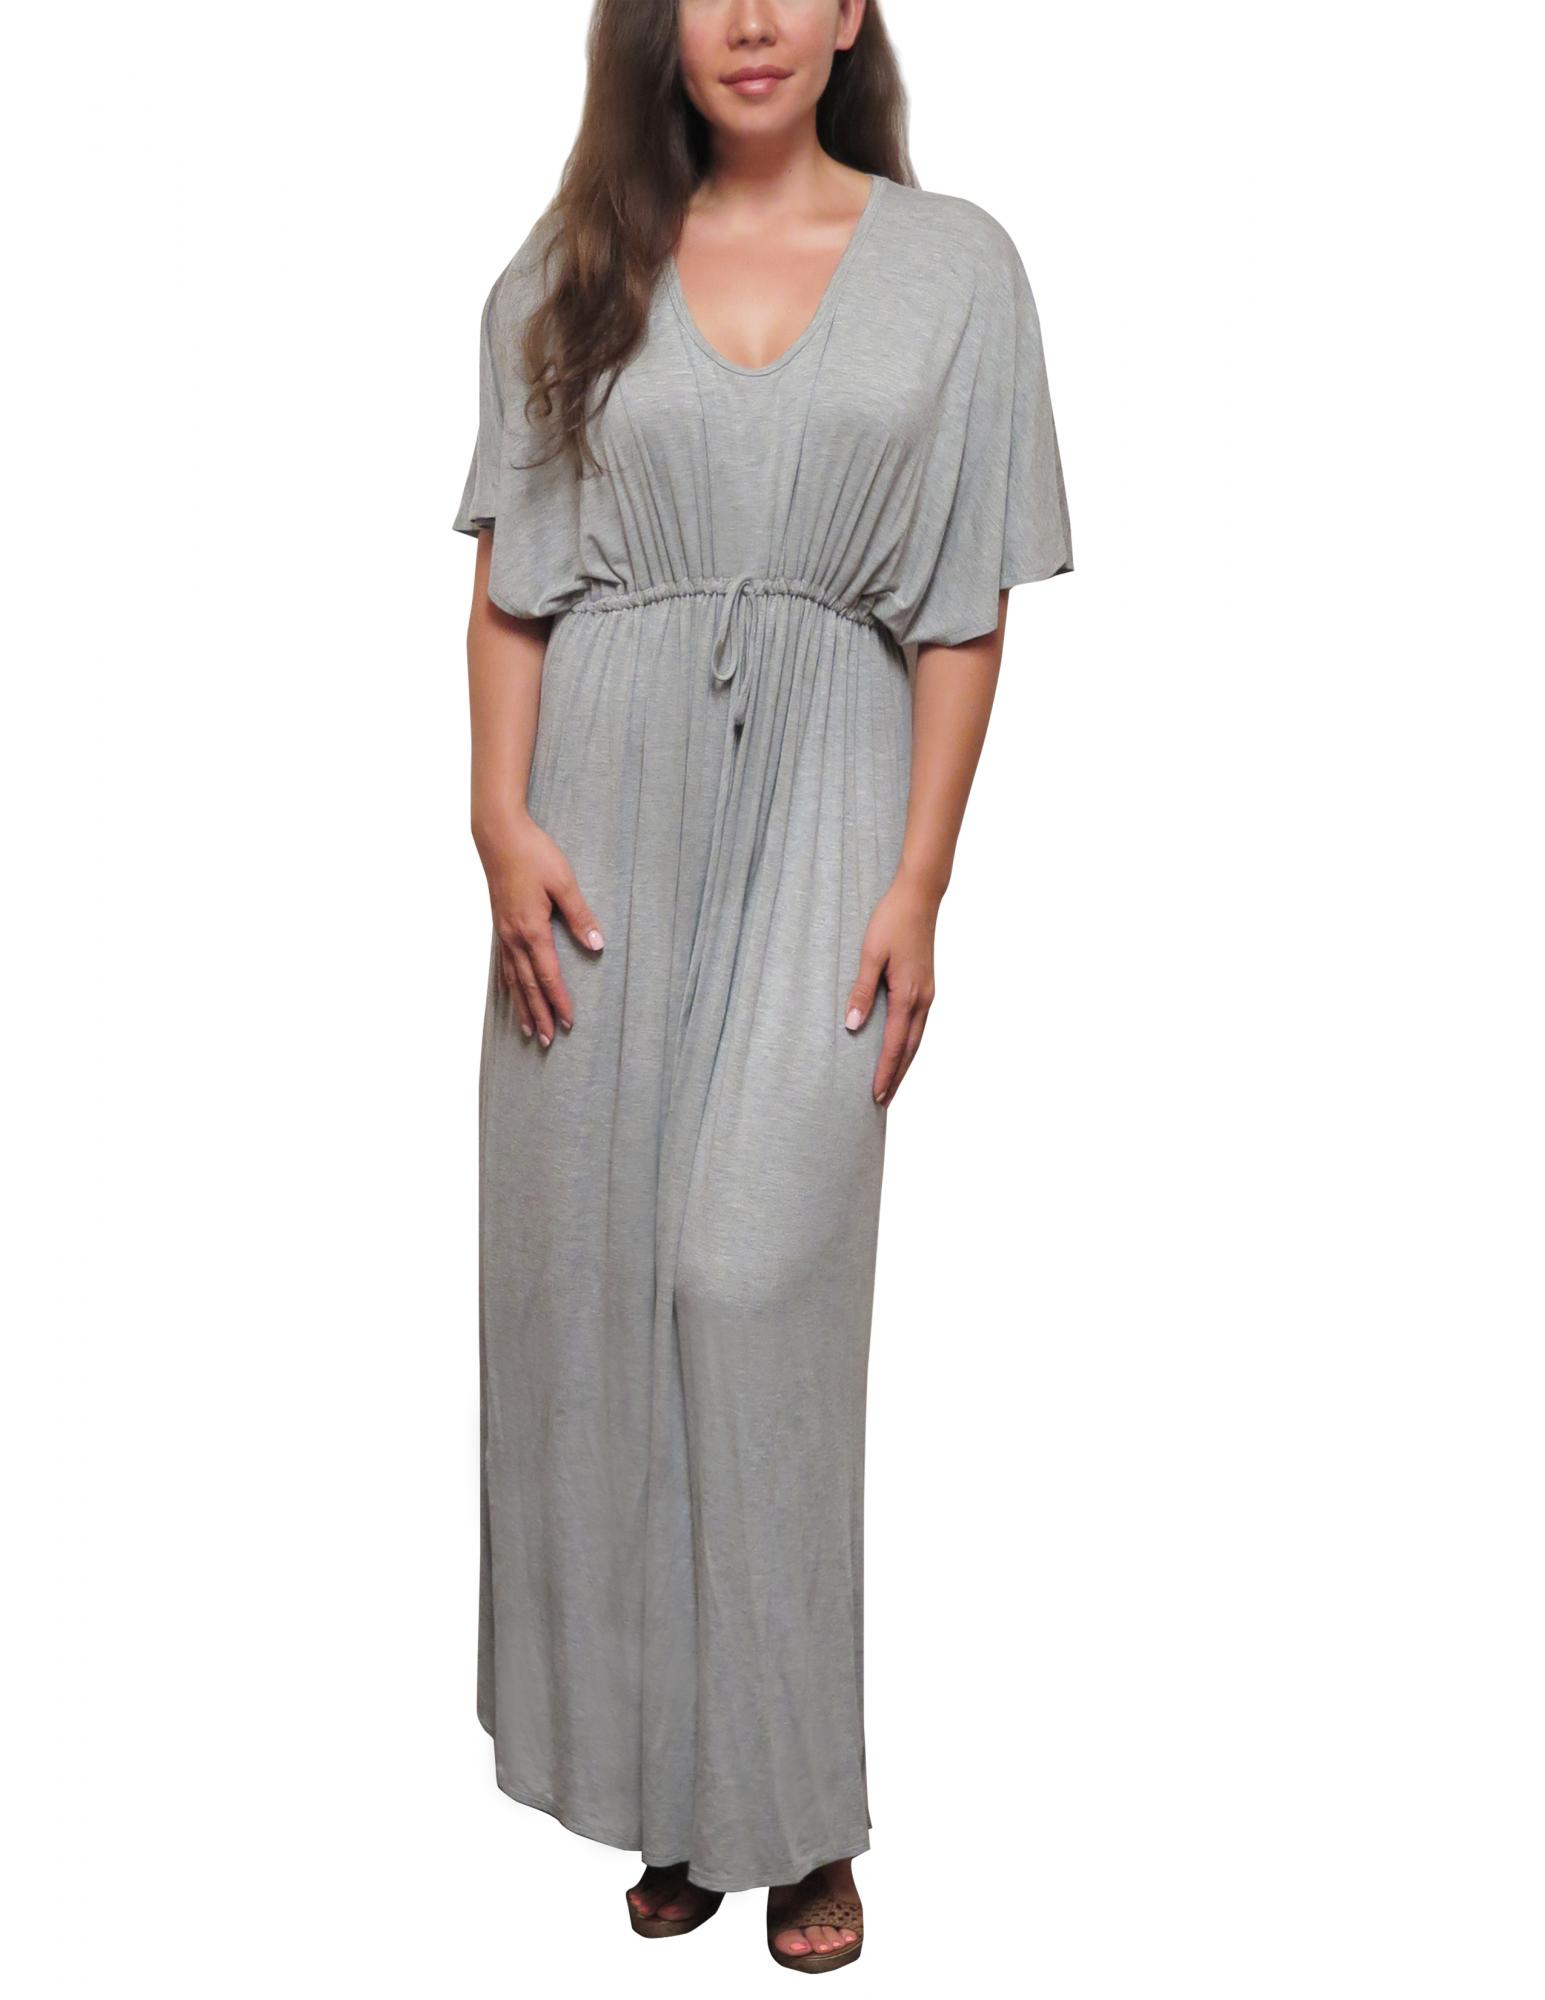 bun-to-baby-kaftan-maxi-nursing-dress.jpg